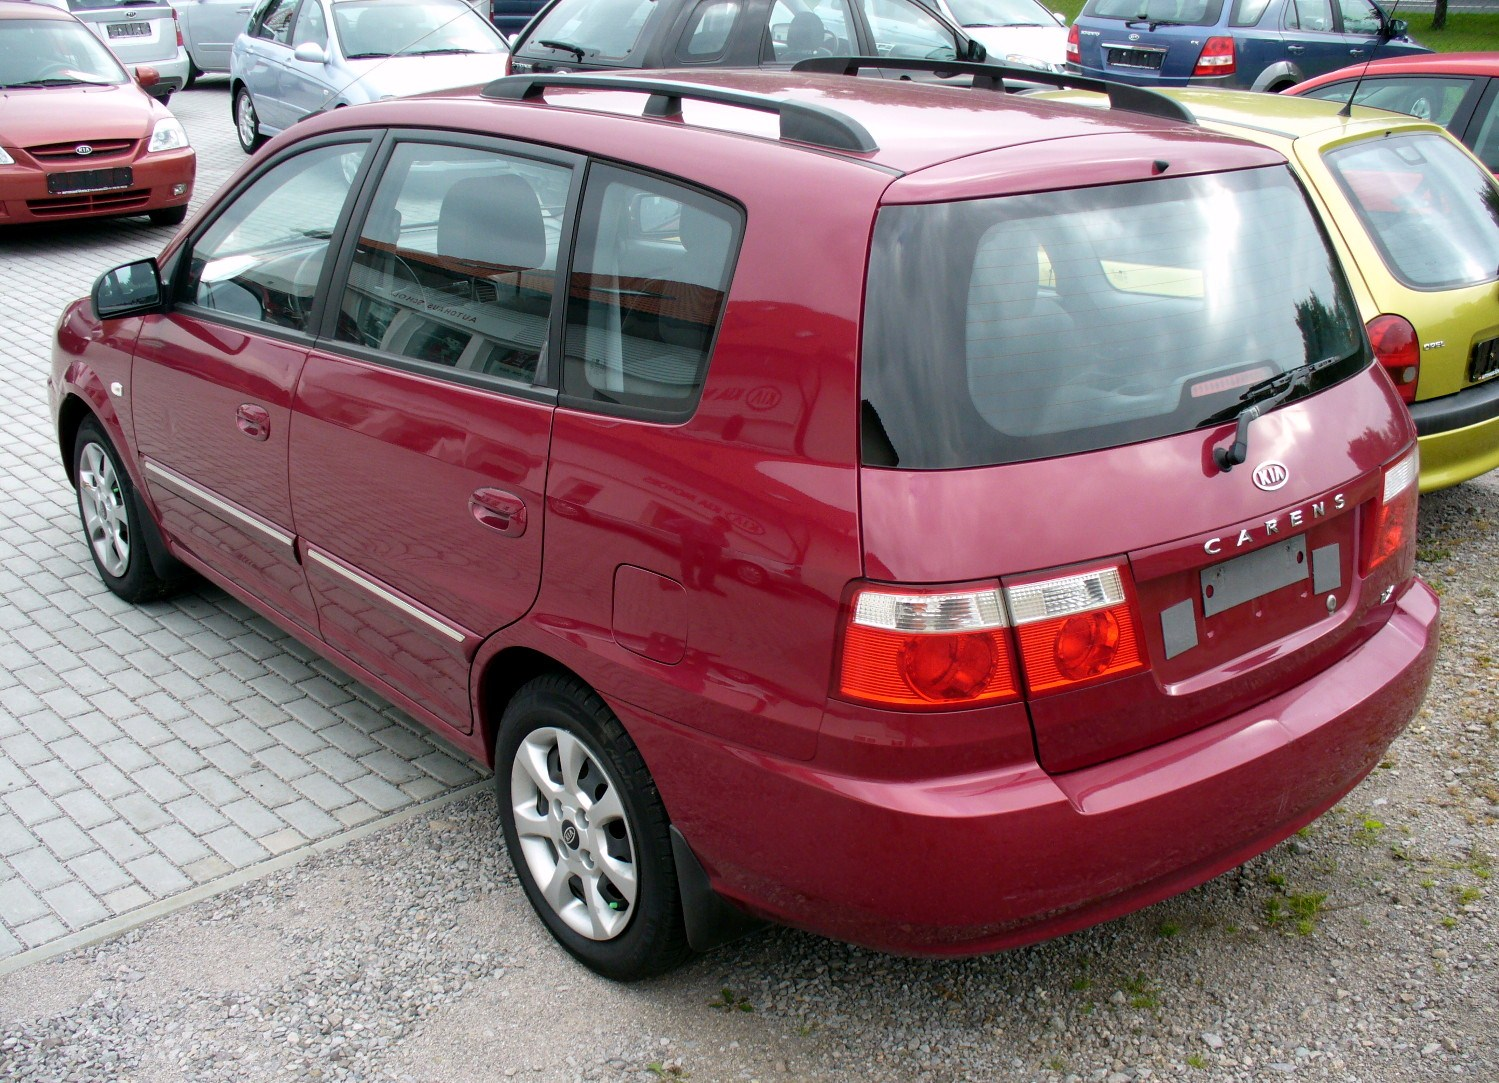 File Kia Carens 1 8 Lx Imperialrot Heck Jpg Wikimedia Commons